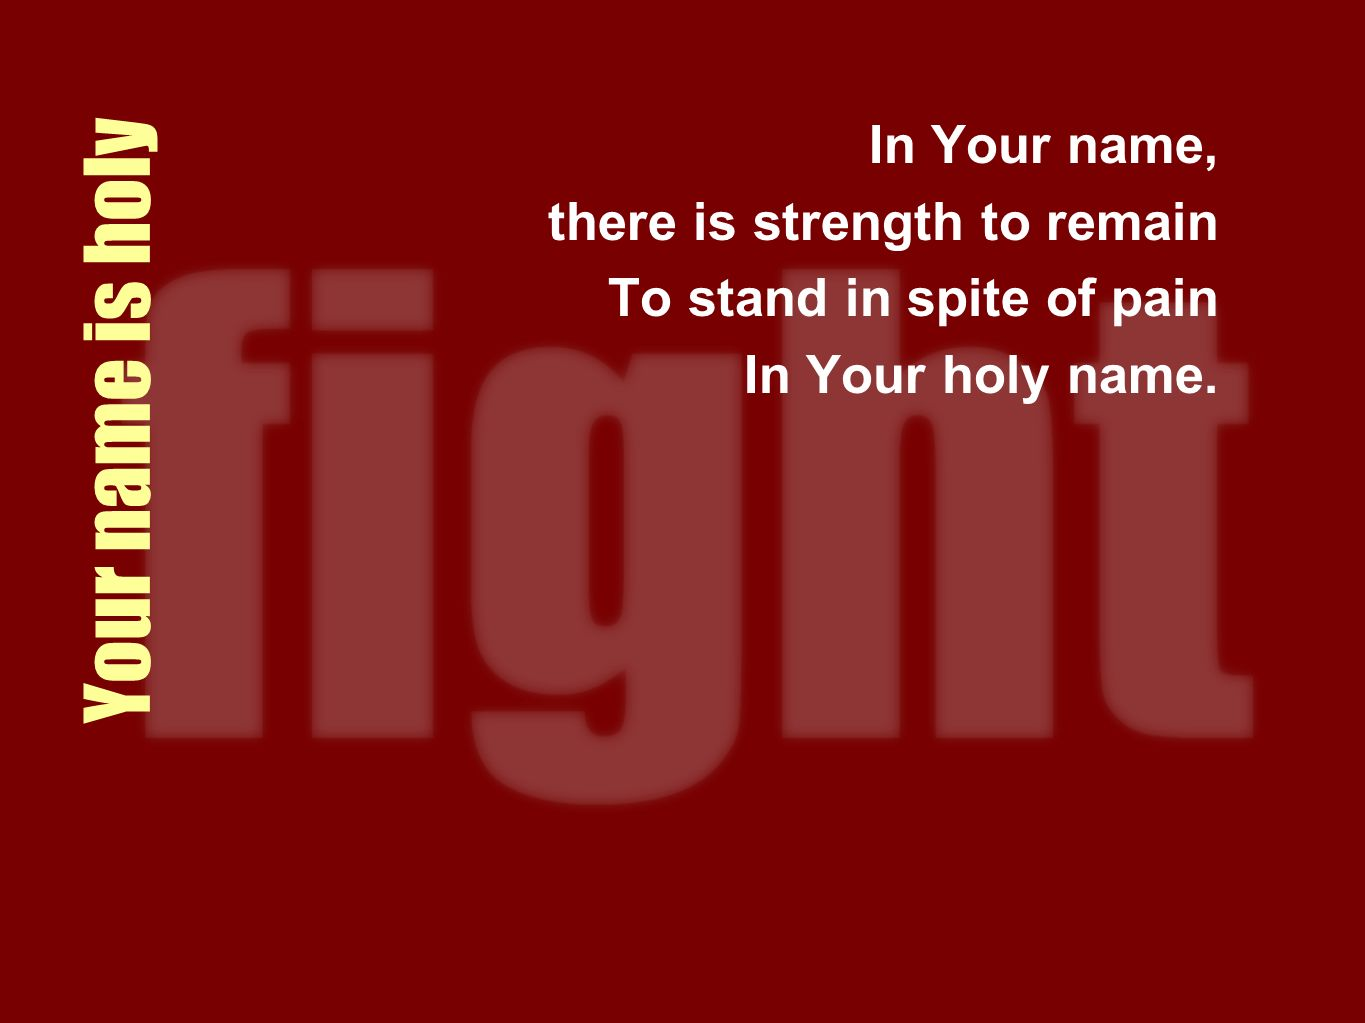 Your name is holy In Your name, there is strength to remain To stand in spite of pain In Your holy name.